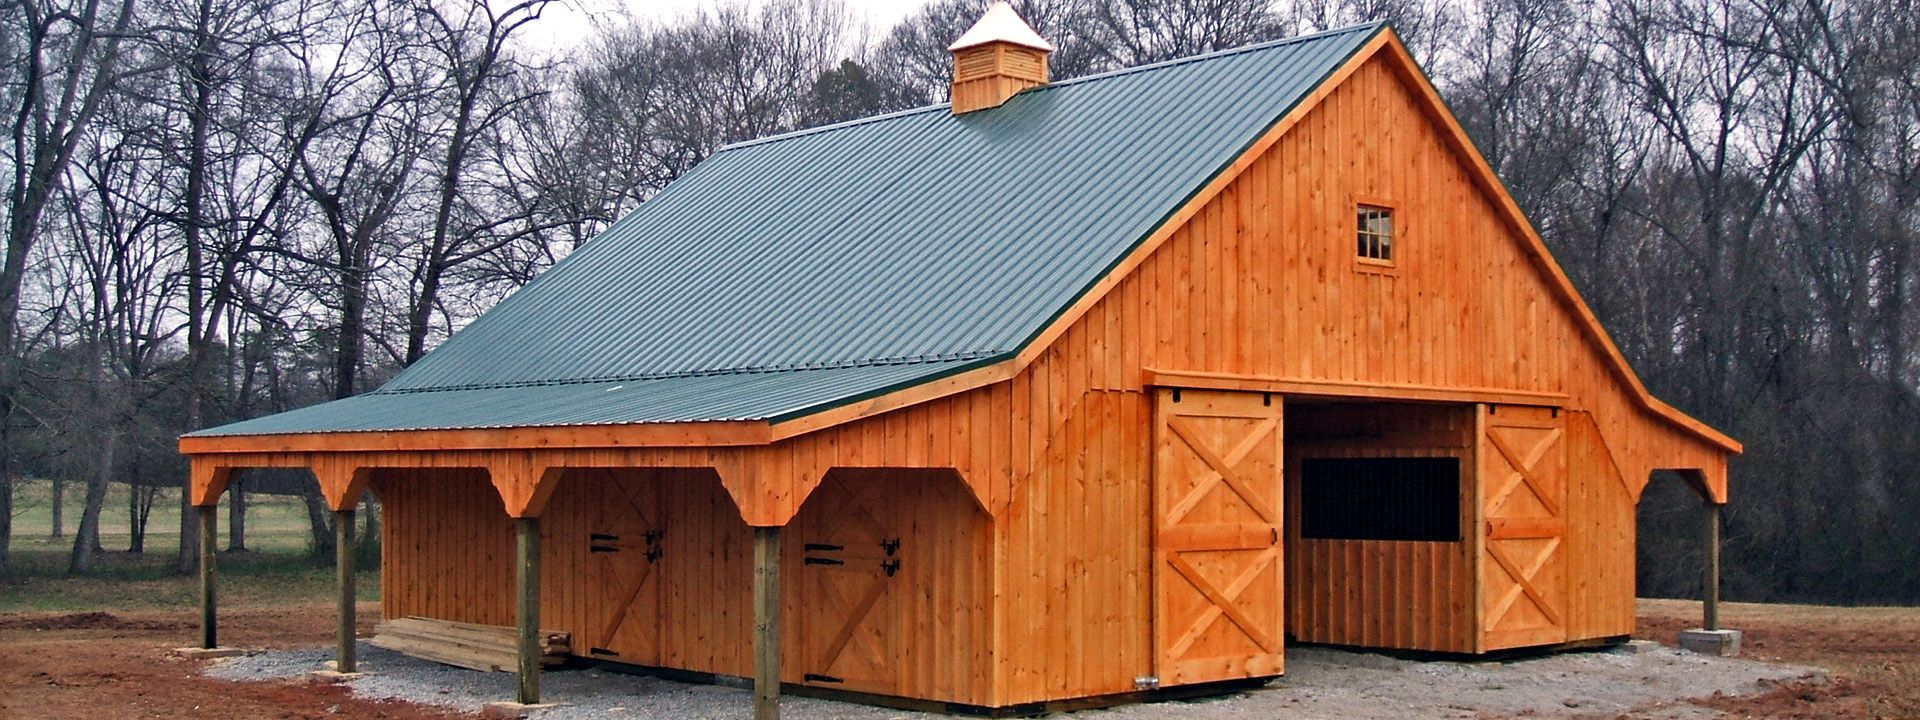 Modular Horse Barn High Profile With Overhangs 4